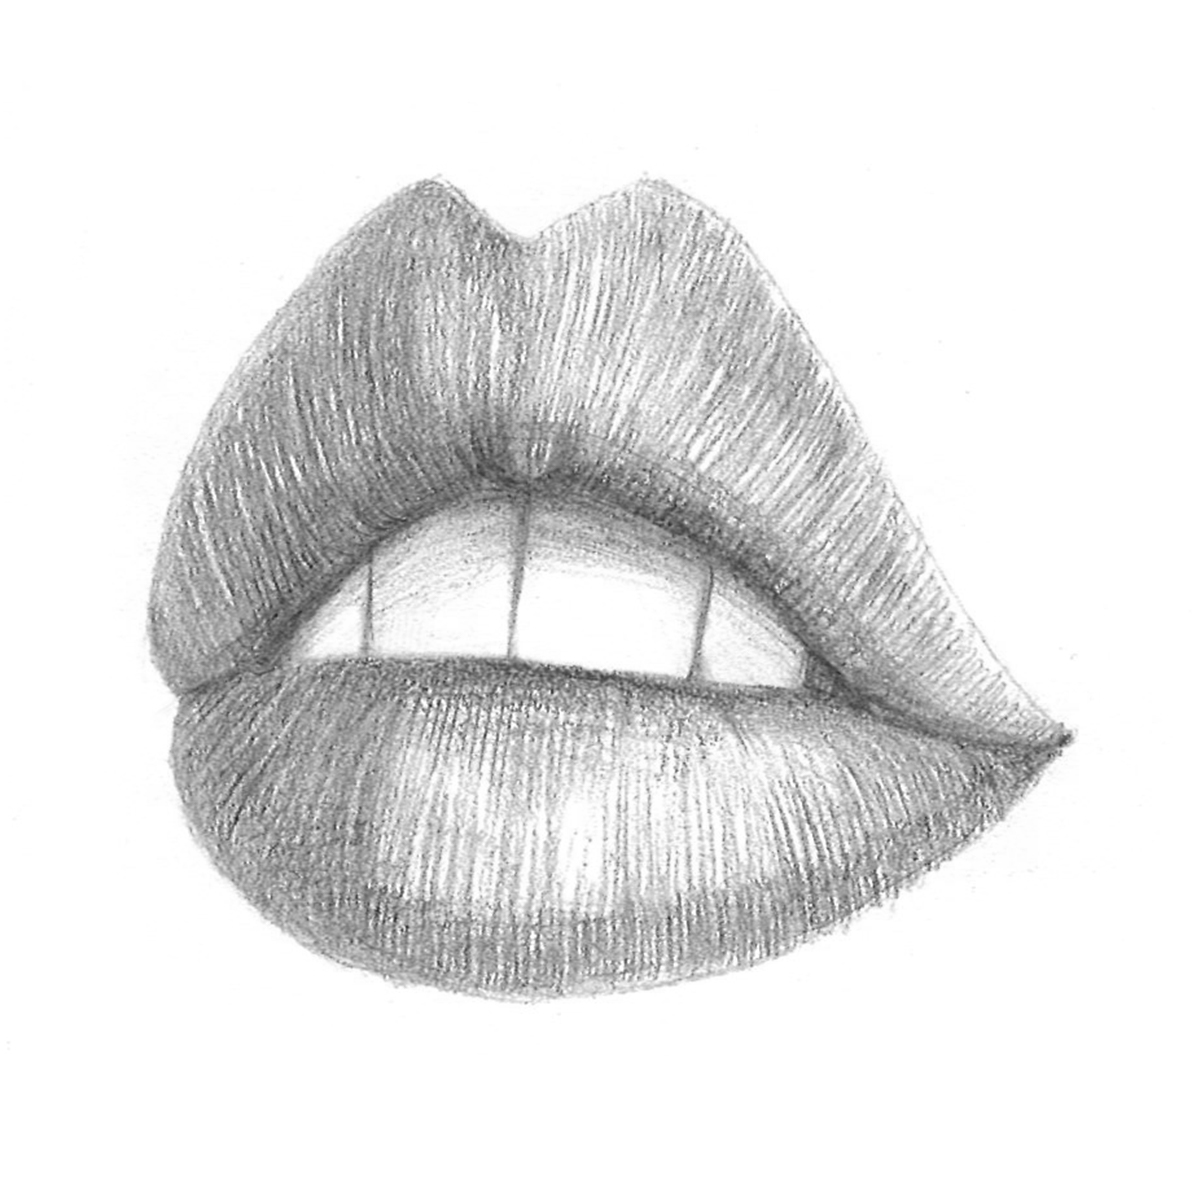 how to draw lips from the side